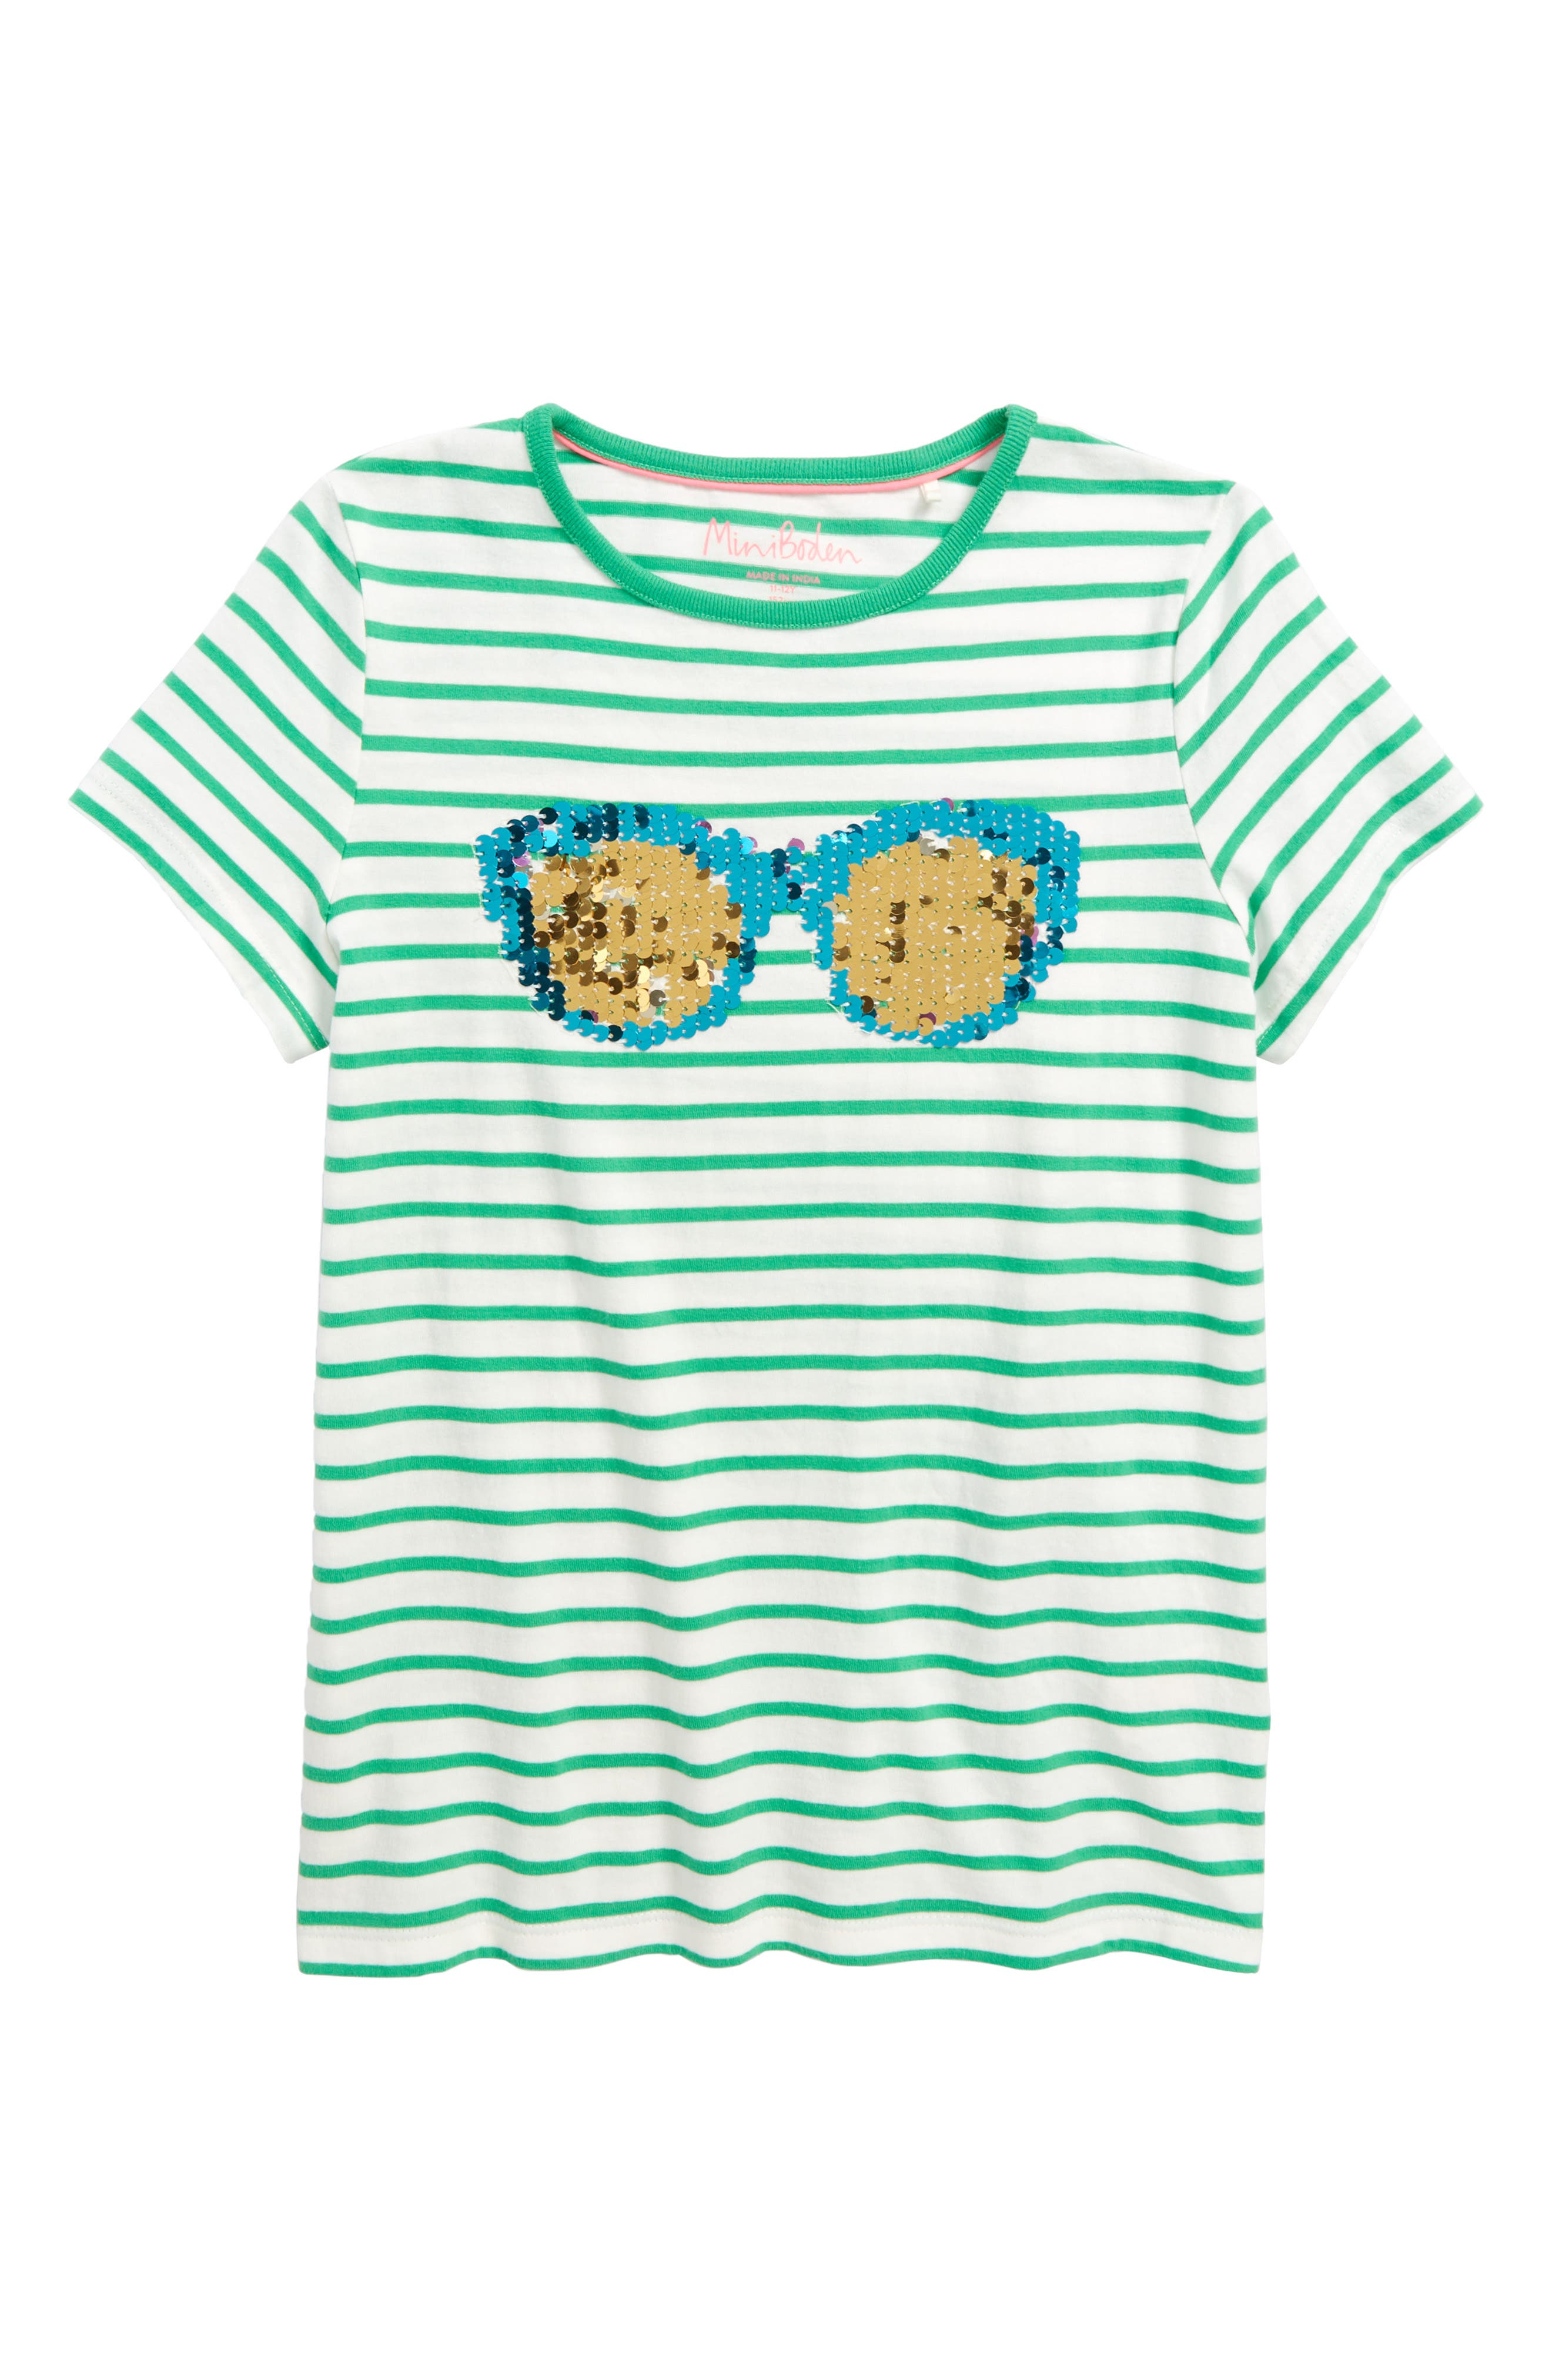 MINI BODEN,                             Sunny Sequin Tee,                             Main thumbnail 1, color,                             315